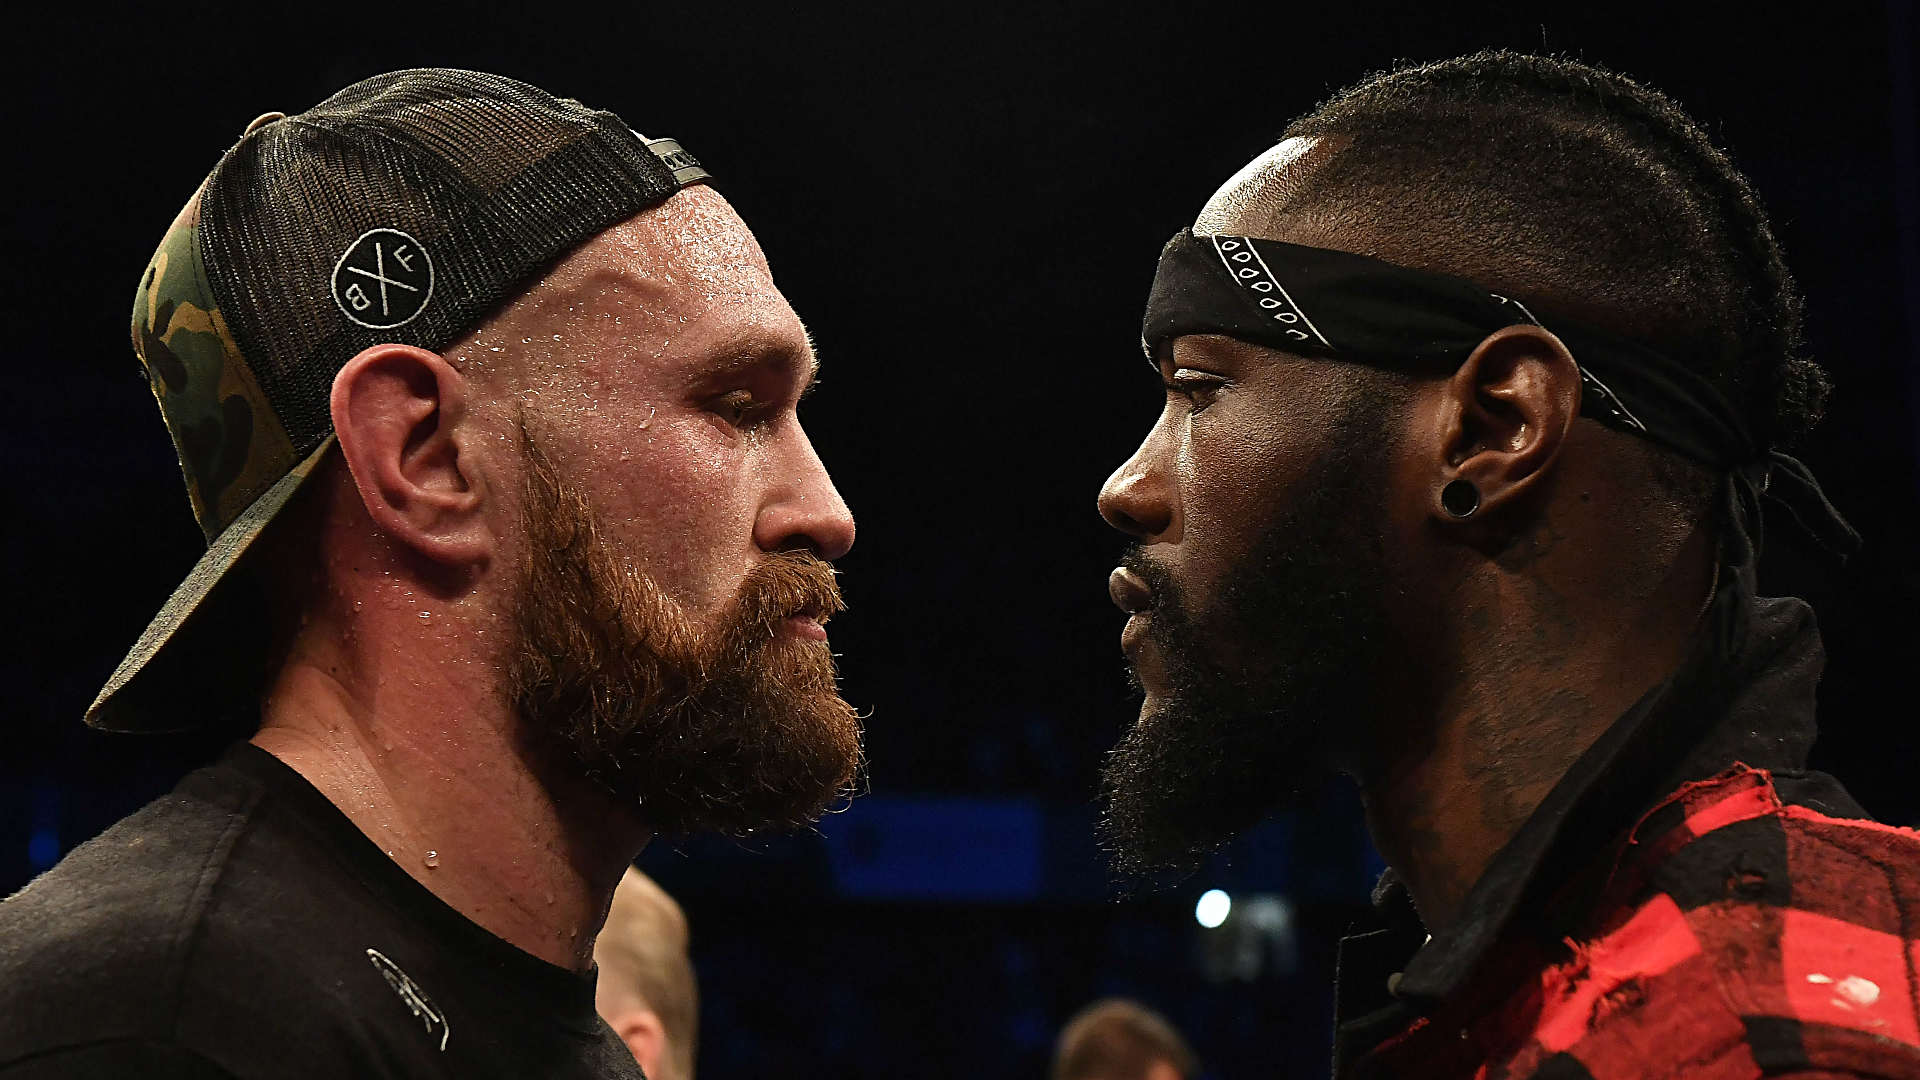 Deontay Wilder-Tyson Fury fight playing a big role in the heavyweight renaissance